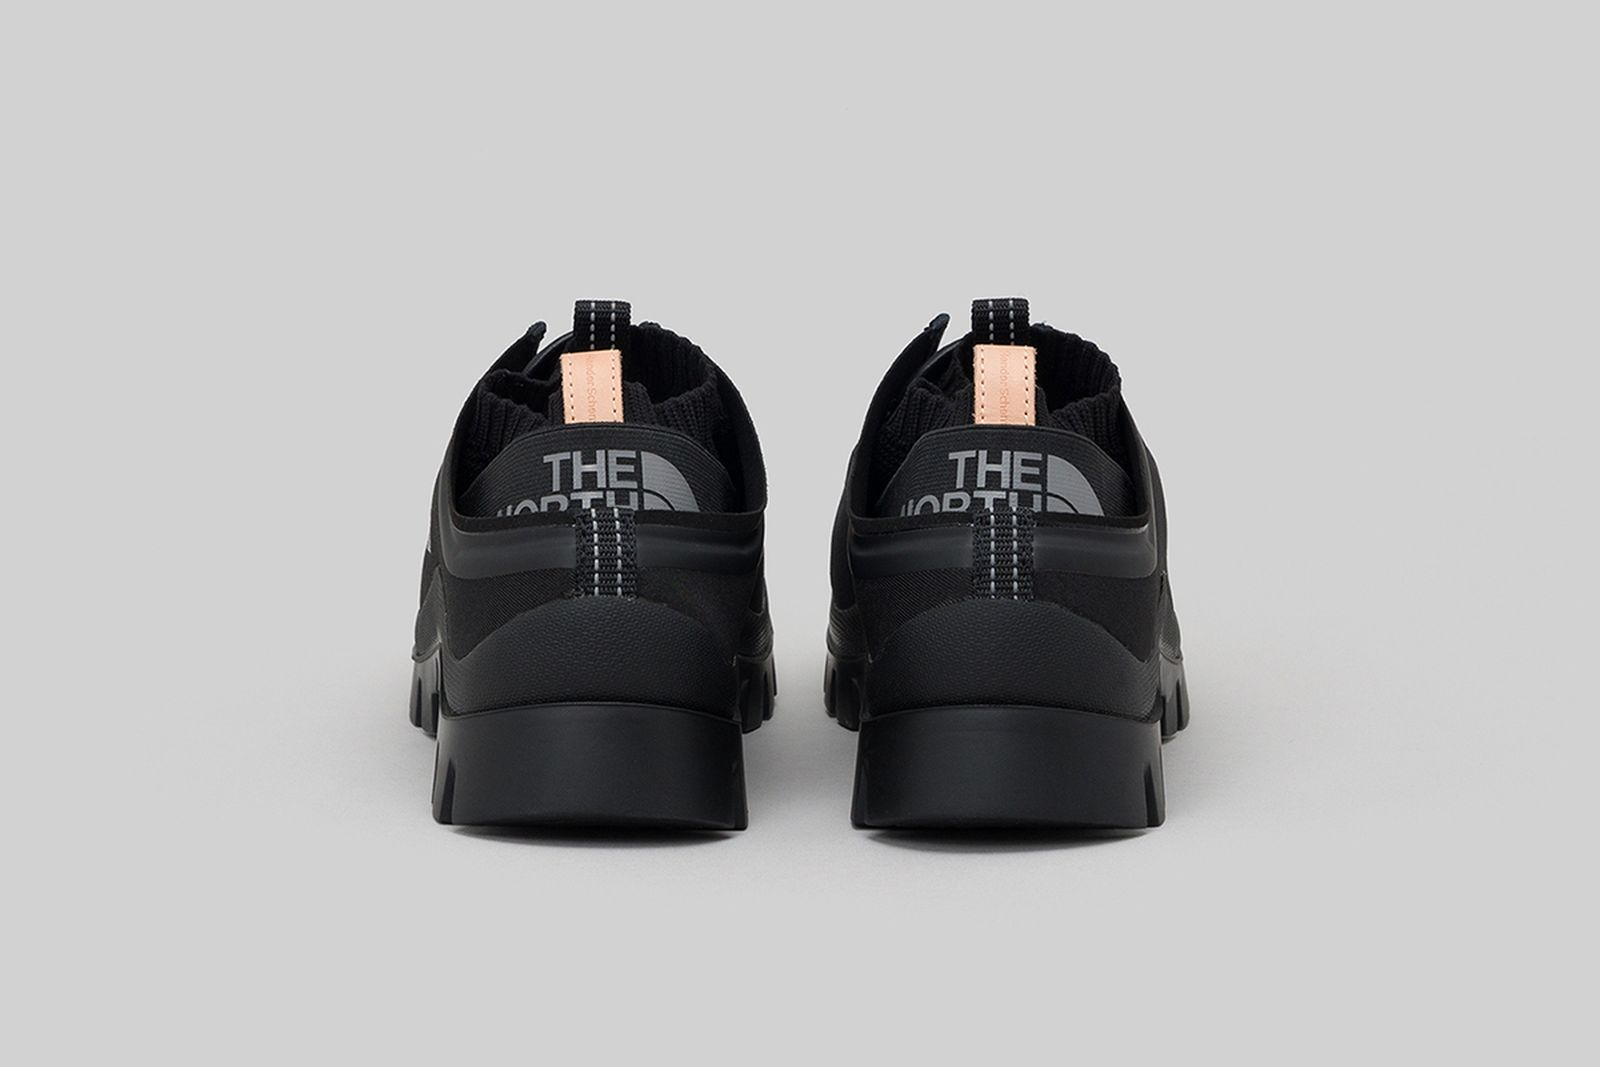 the-north-face-hender-scheme-ss21-release-date-price-07